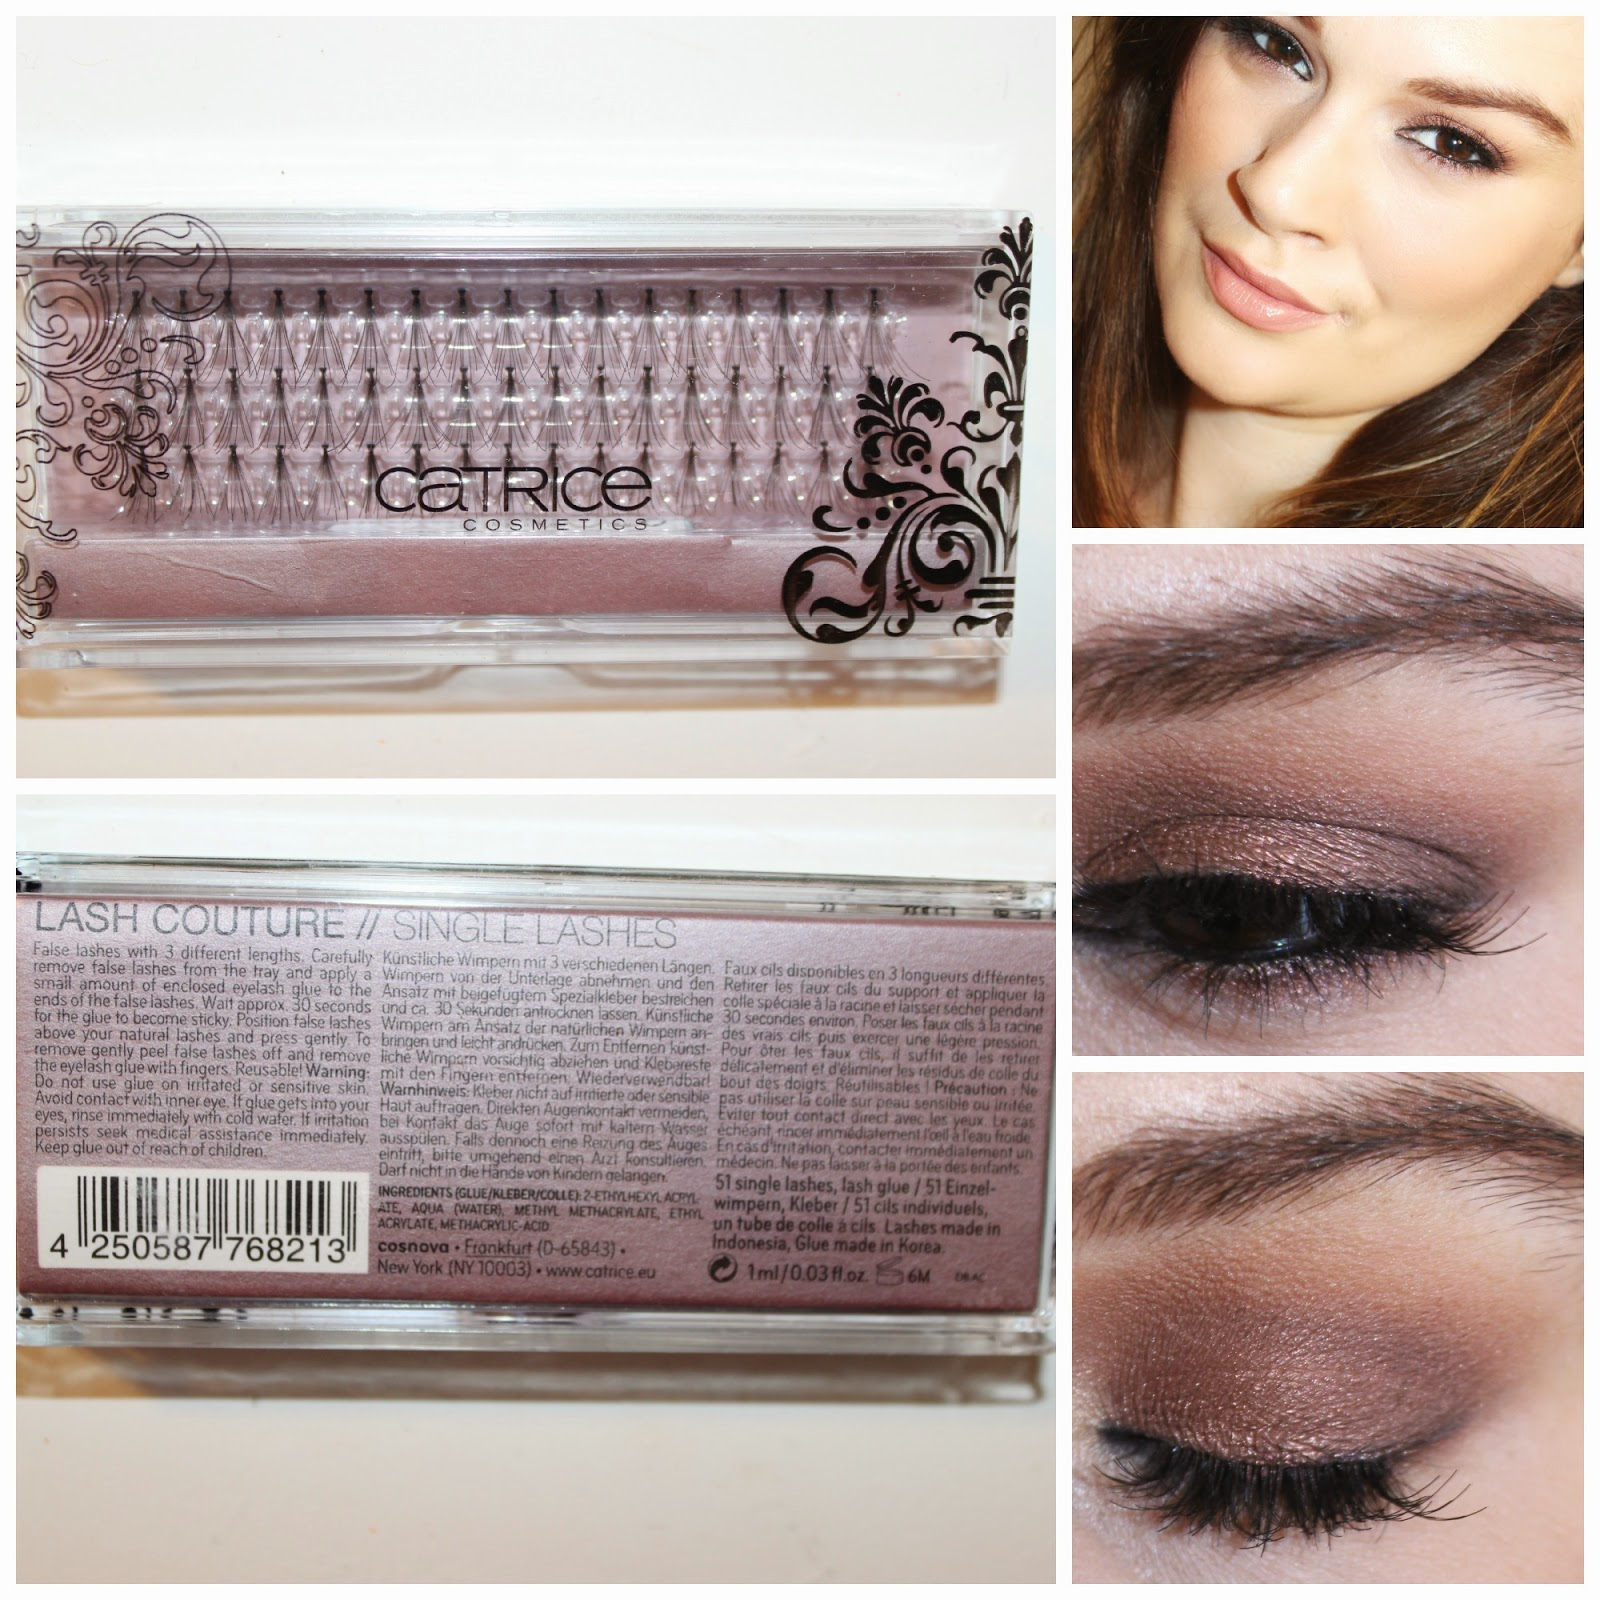 Beautiful Me Plus You Catrices Lash Couture Single Lashes Review